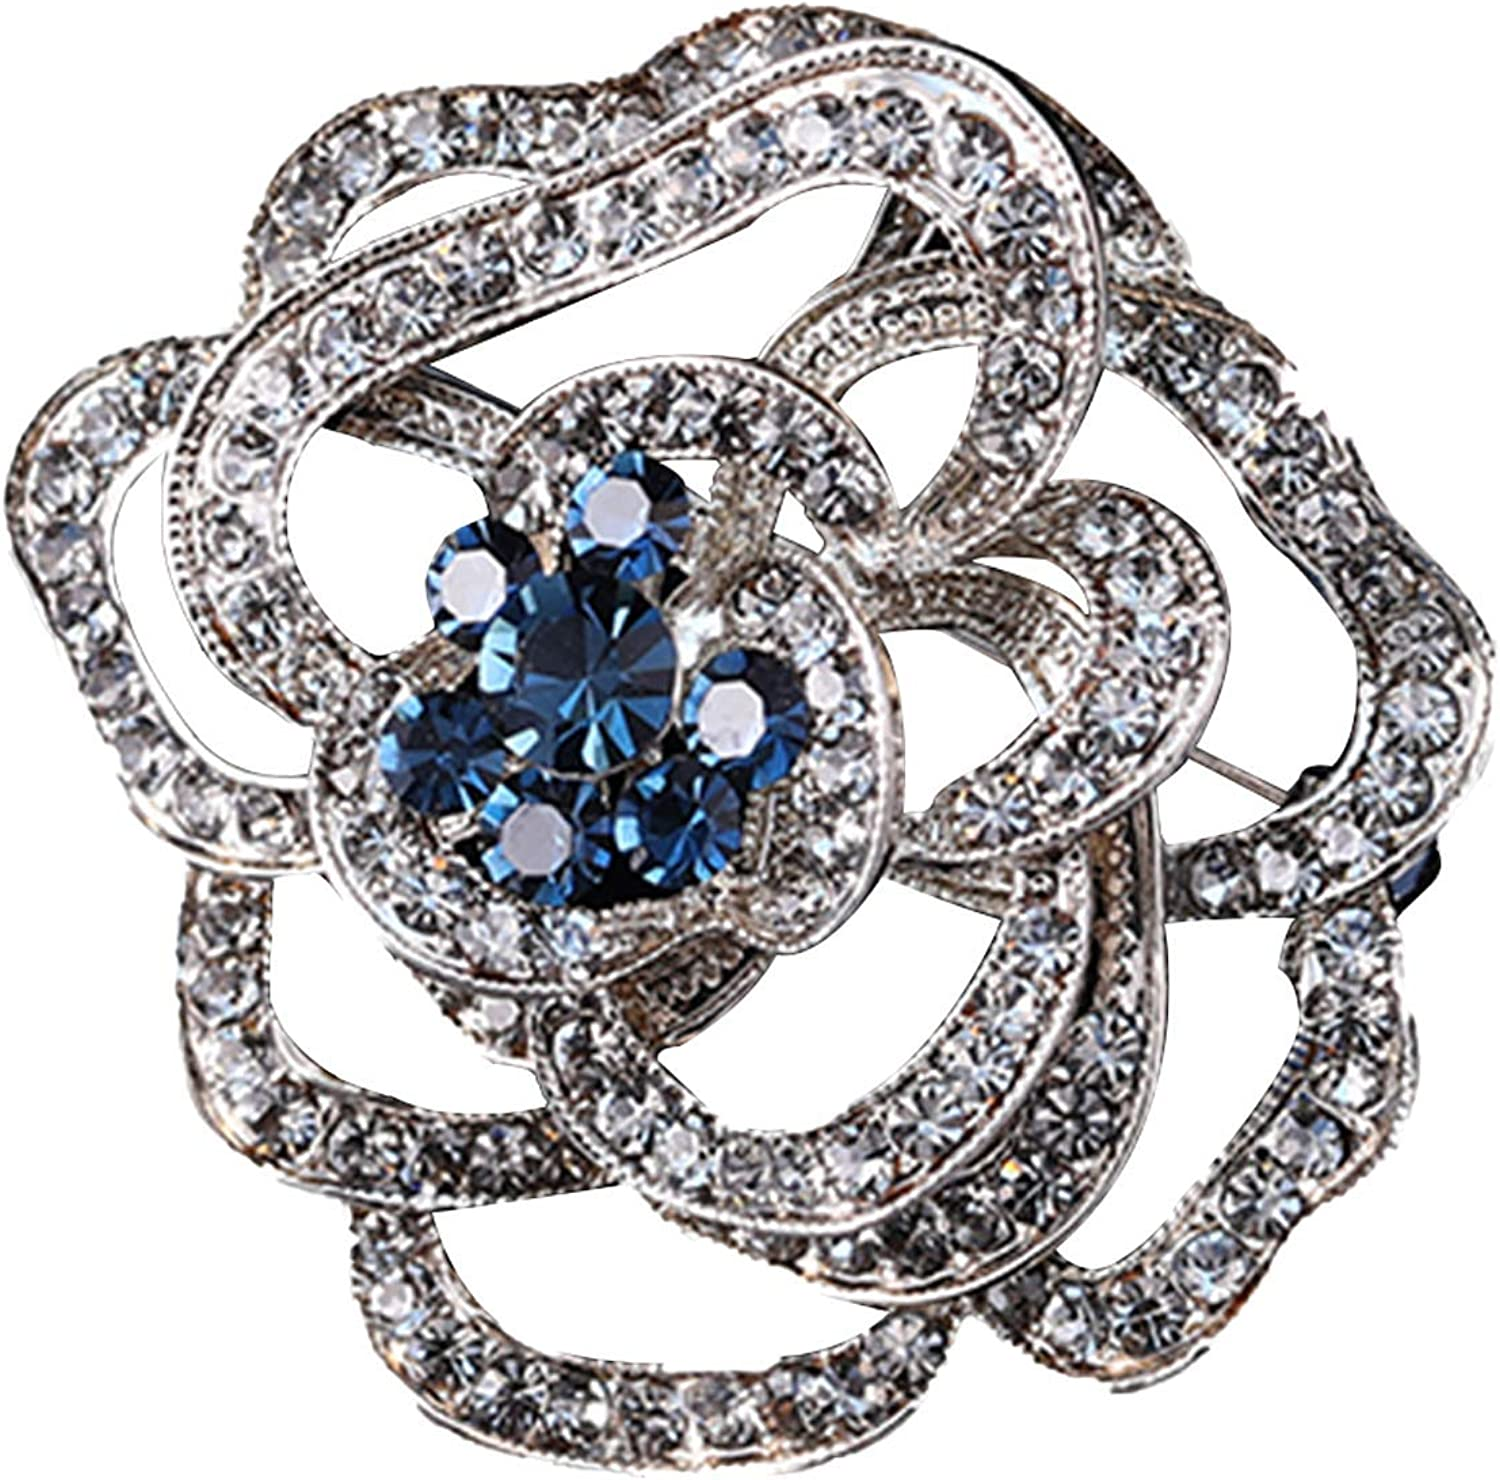 Jindorla Womens Rhinestone Flower Brooches - Crystal Vintage Style Brooch Pins Jewelry to Ladies Banquet Wedding Daily Use